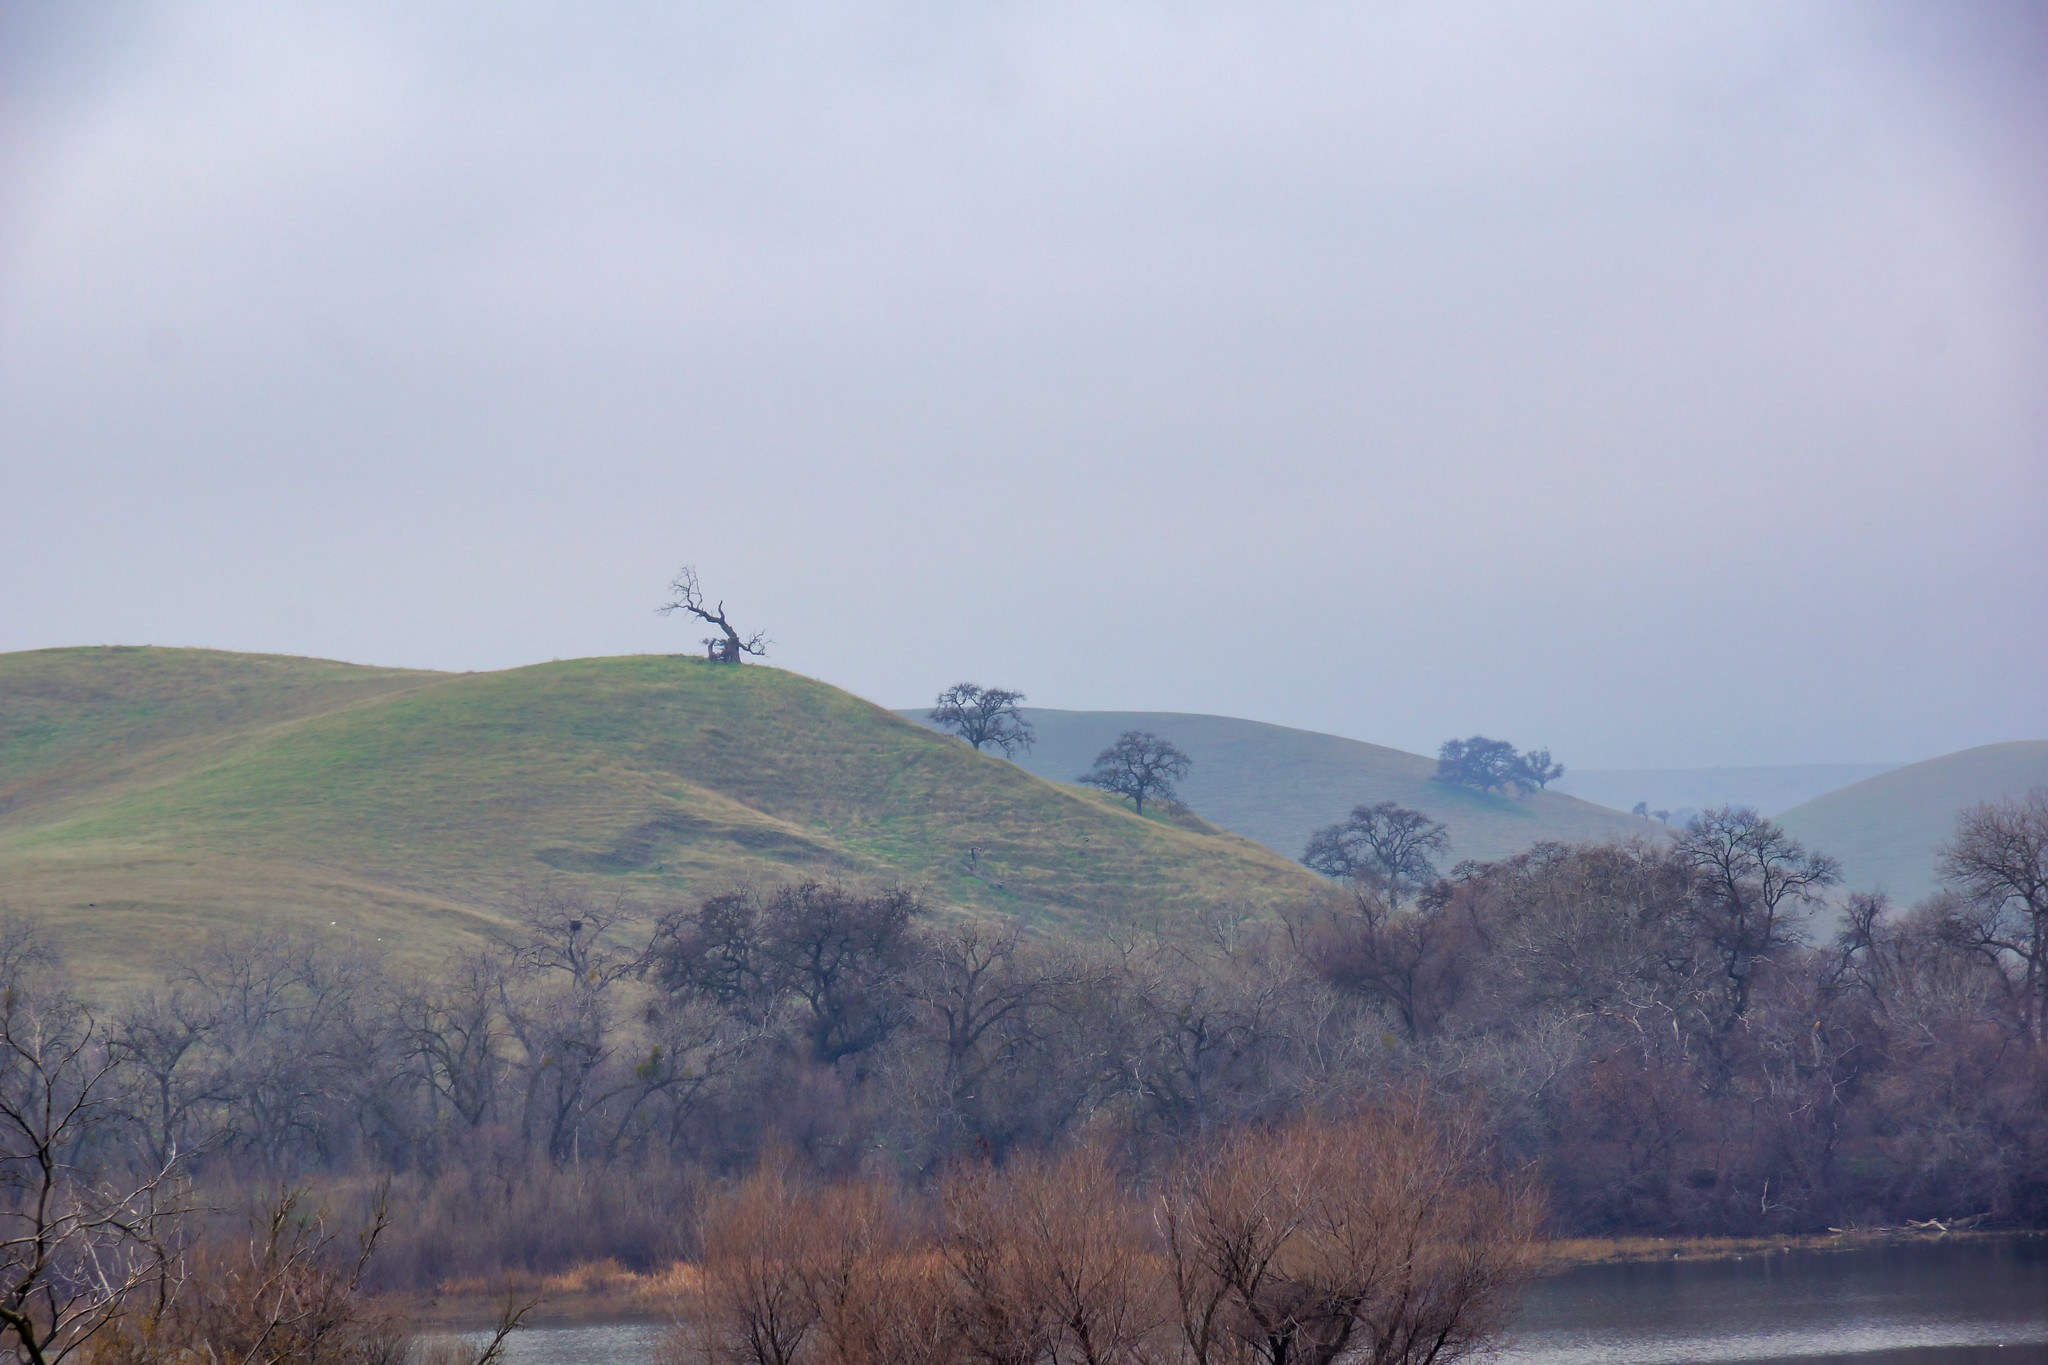 2019-01-13 - Landscape Photography, Marsh Creek Reservoir